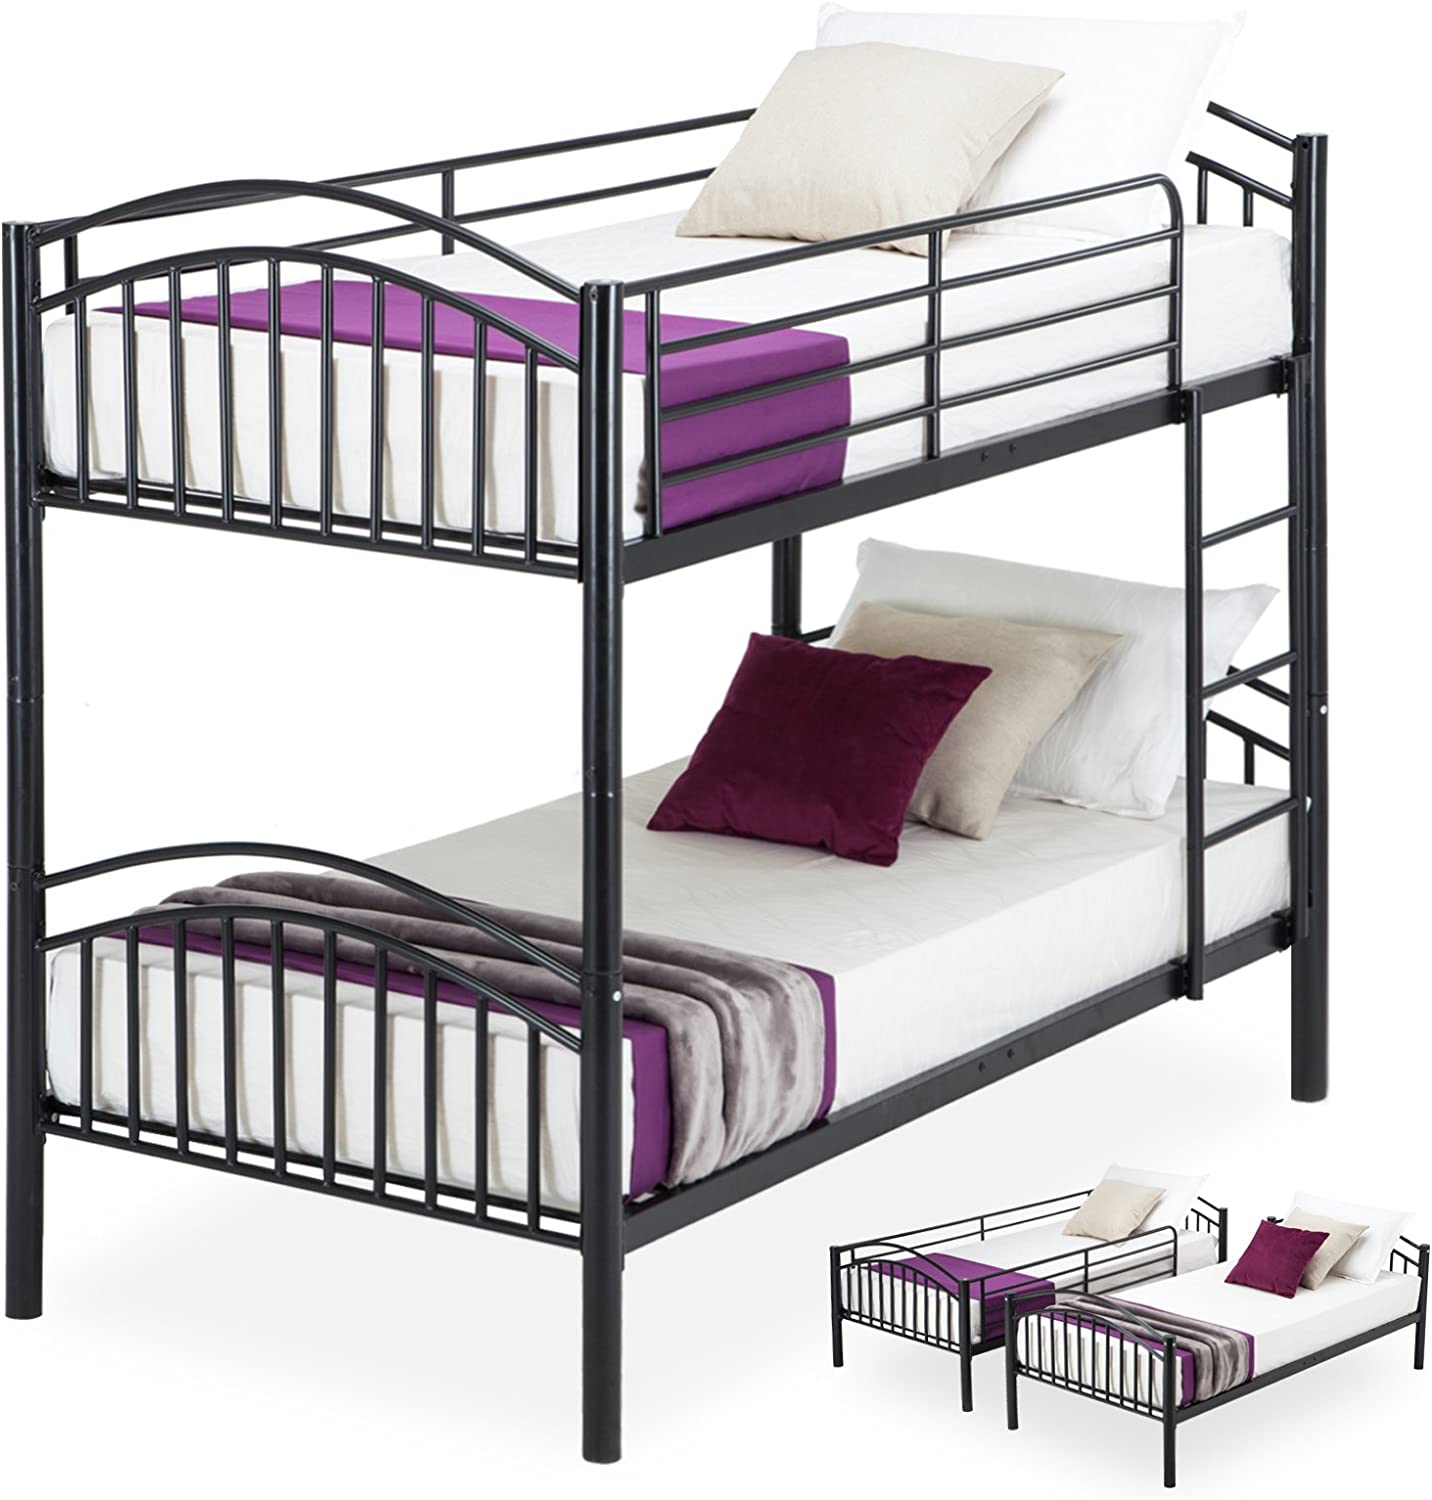 Mecor Metal Bunk Beds Frame 2 X 3ft Single Bunk Bed 2 Person For Kids Teenagers Childrens And Adults Twin Bed Black Amazon Co Uk Kitchen Home